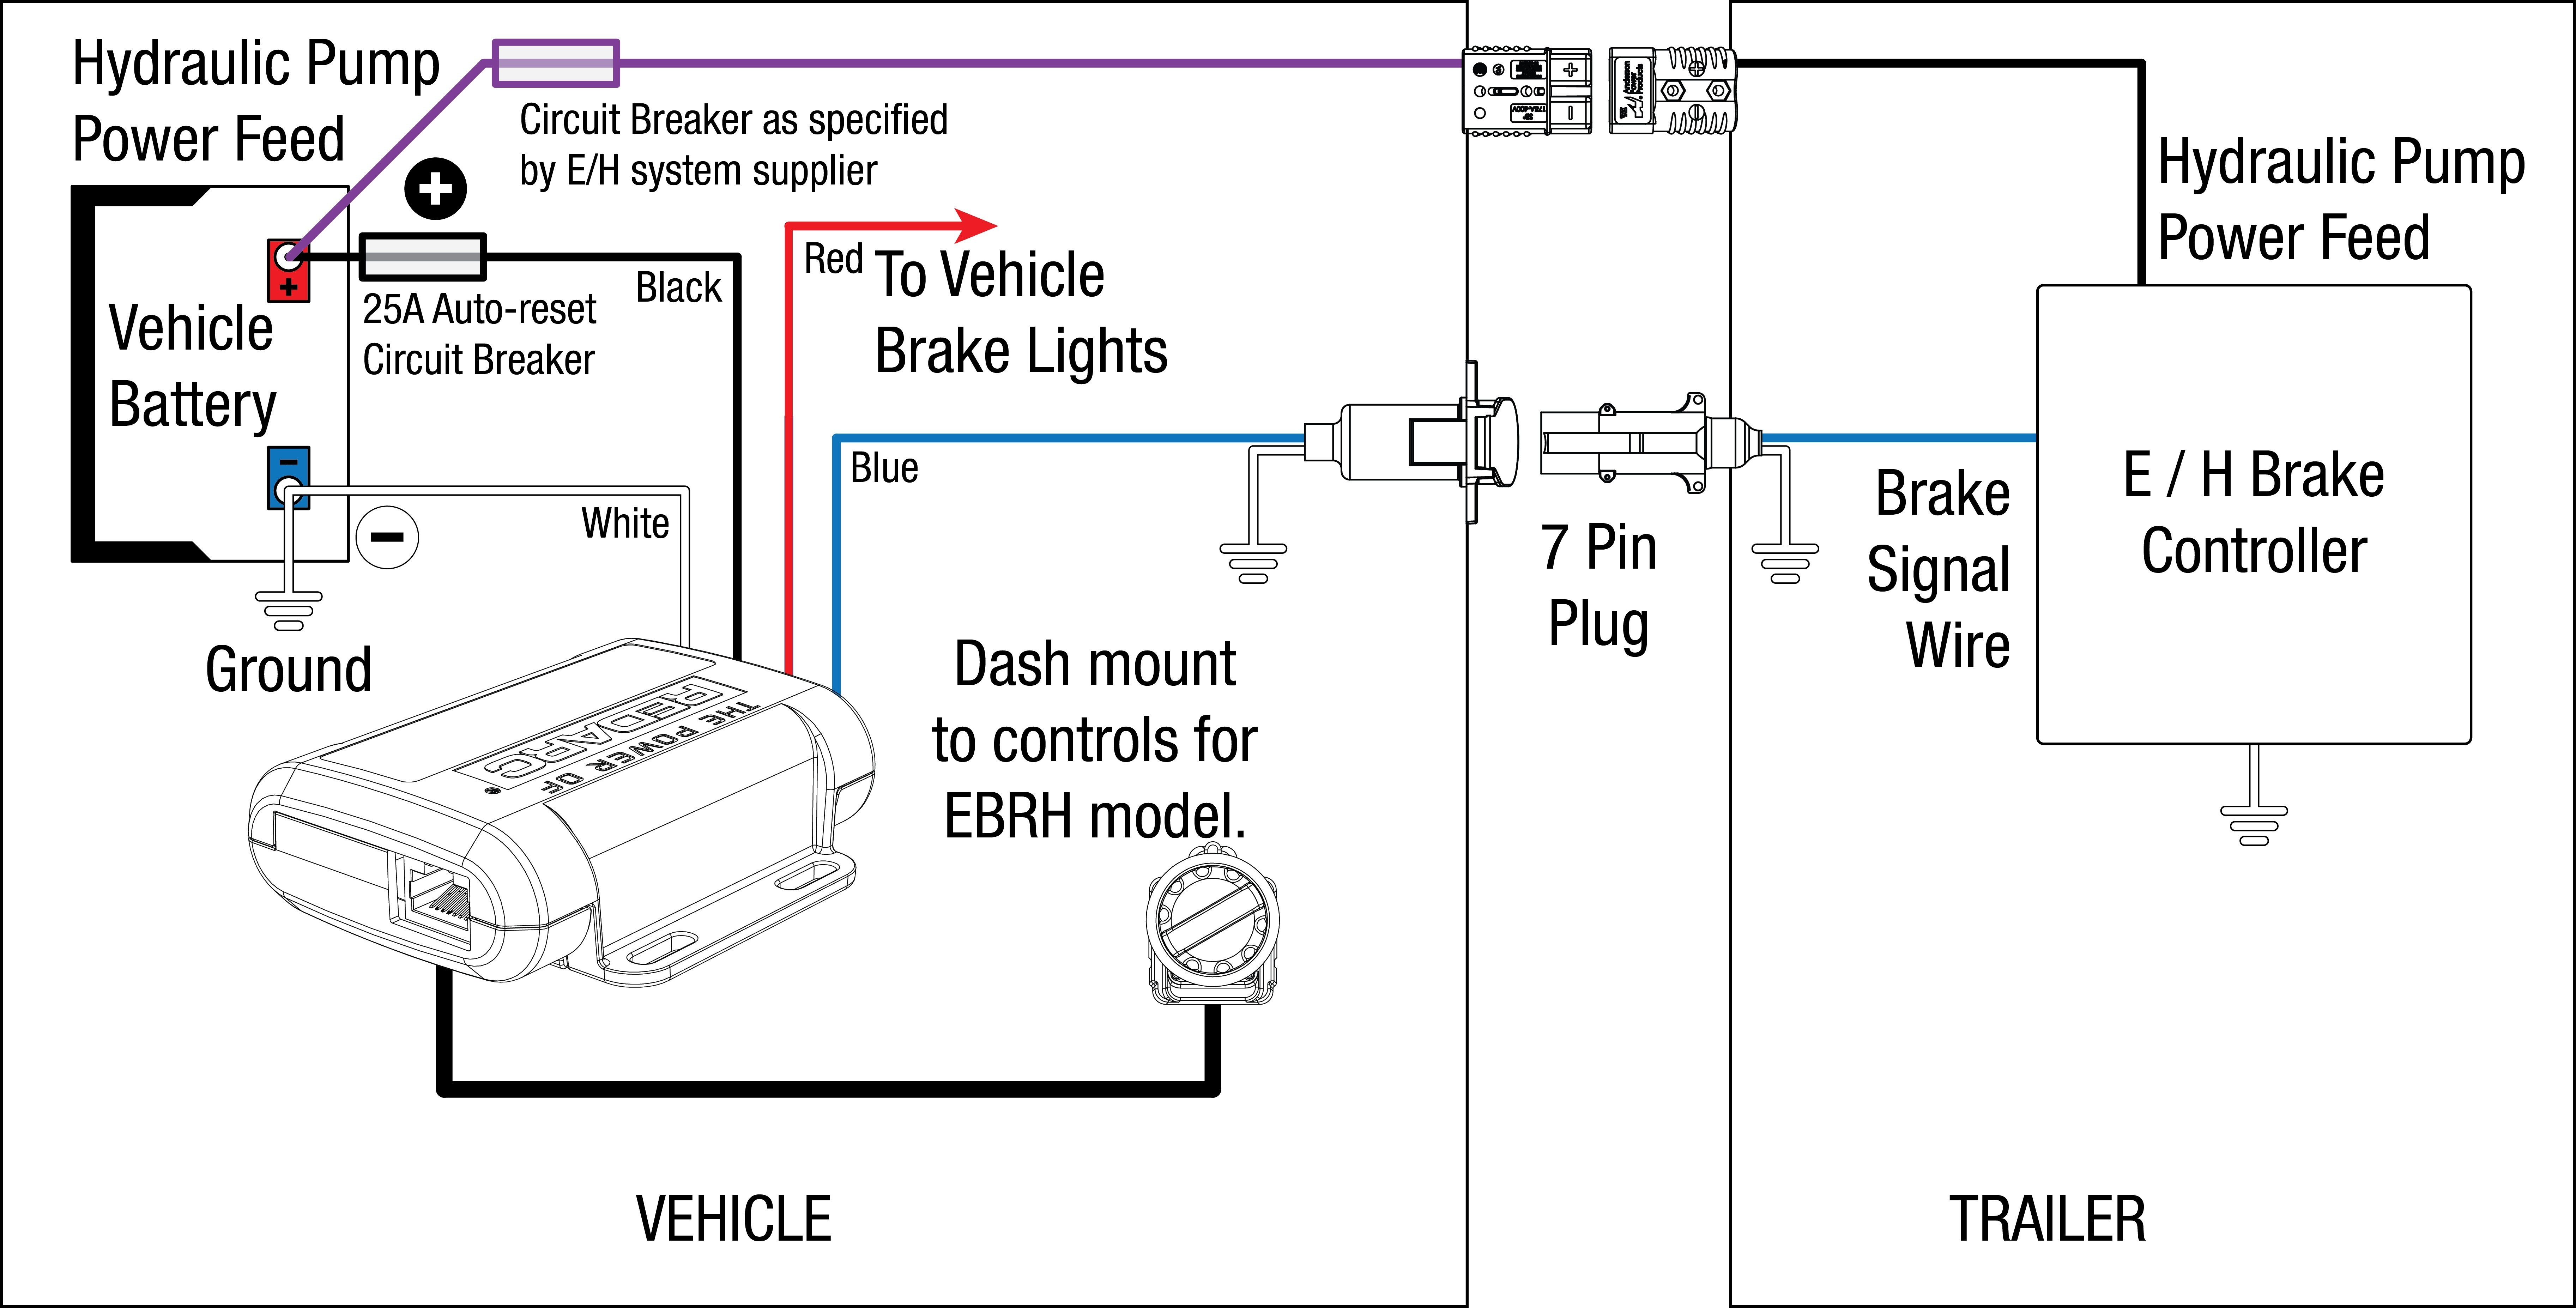 Trailer Jack Wiring Diagram Detailed Schematics Attwoodr 4way Flat Harness Kit For Vehicles And Trailers With Electric Brakes Image Brake Light